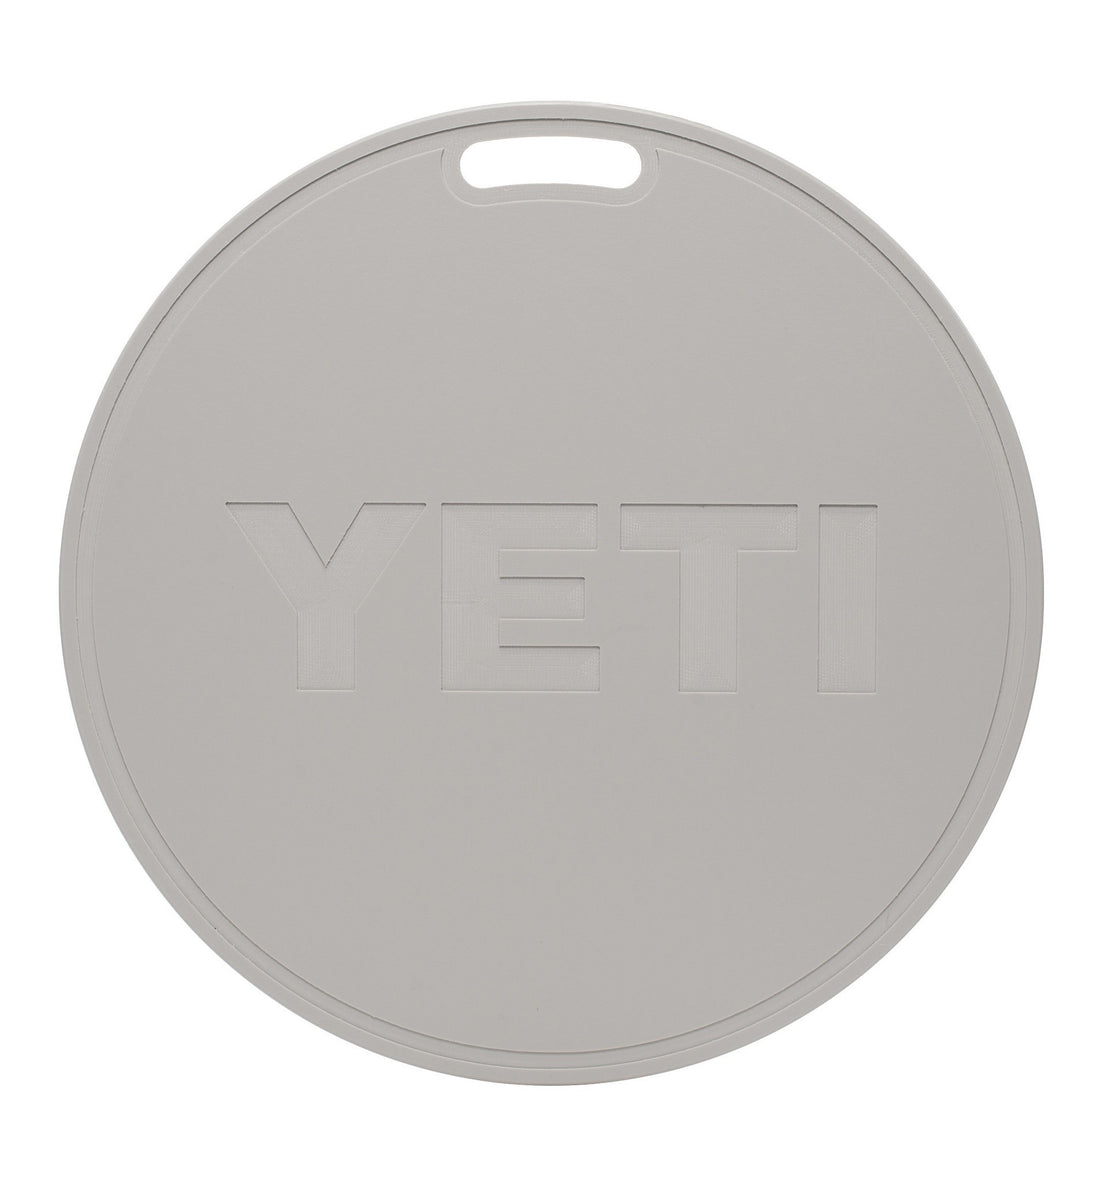 Yeti Tank 45 Lid - Outdoor Living/Travel - Iron and Resin